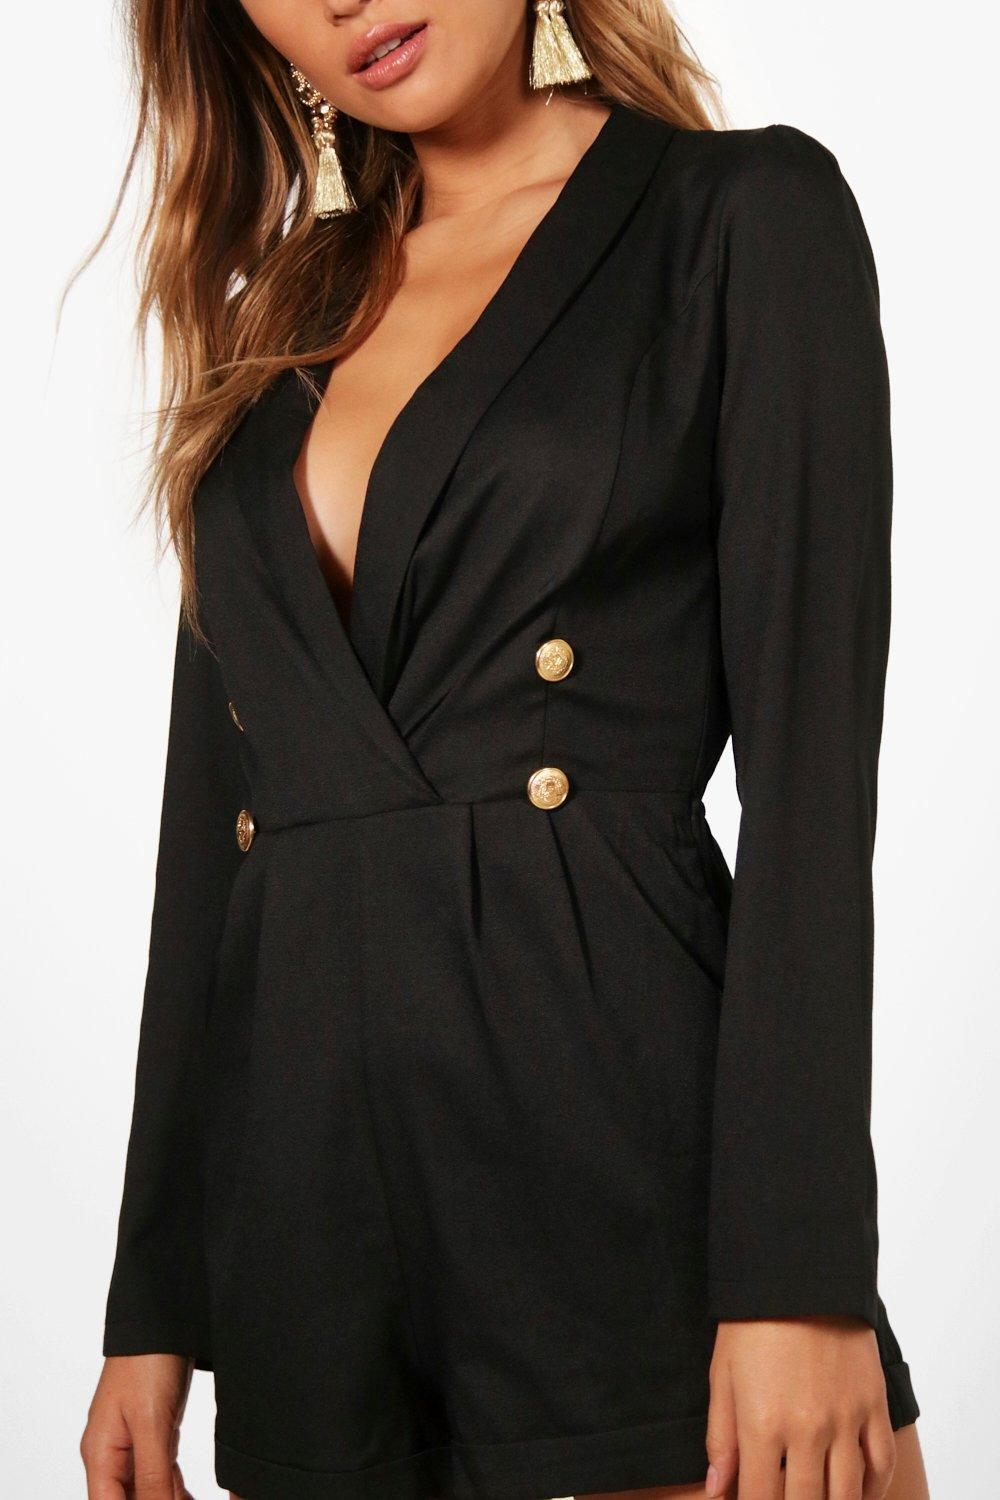 Military Tuxedo Playsuit Military Playsuit Button Button Military black Button Tuxedo black Tuxedo tFnHwqTz0